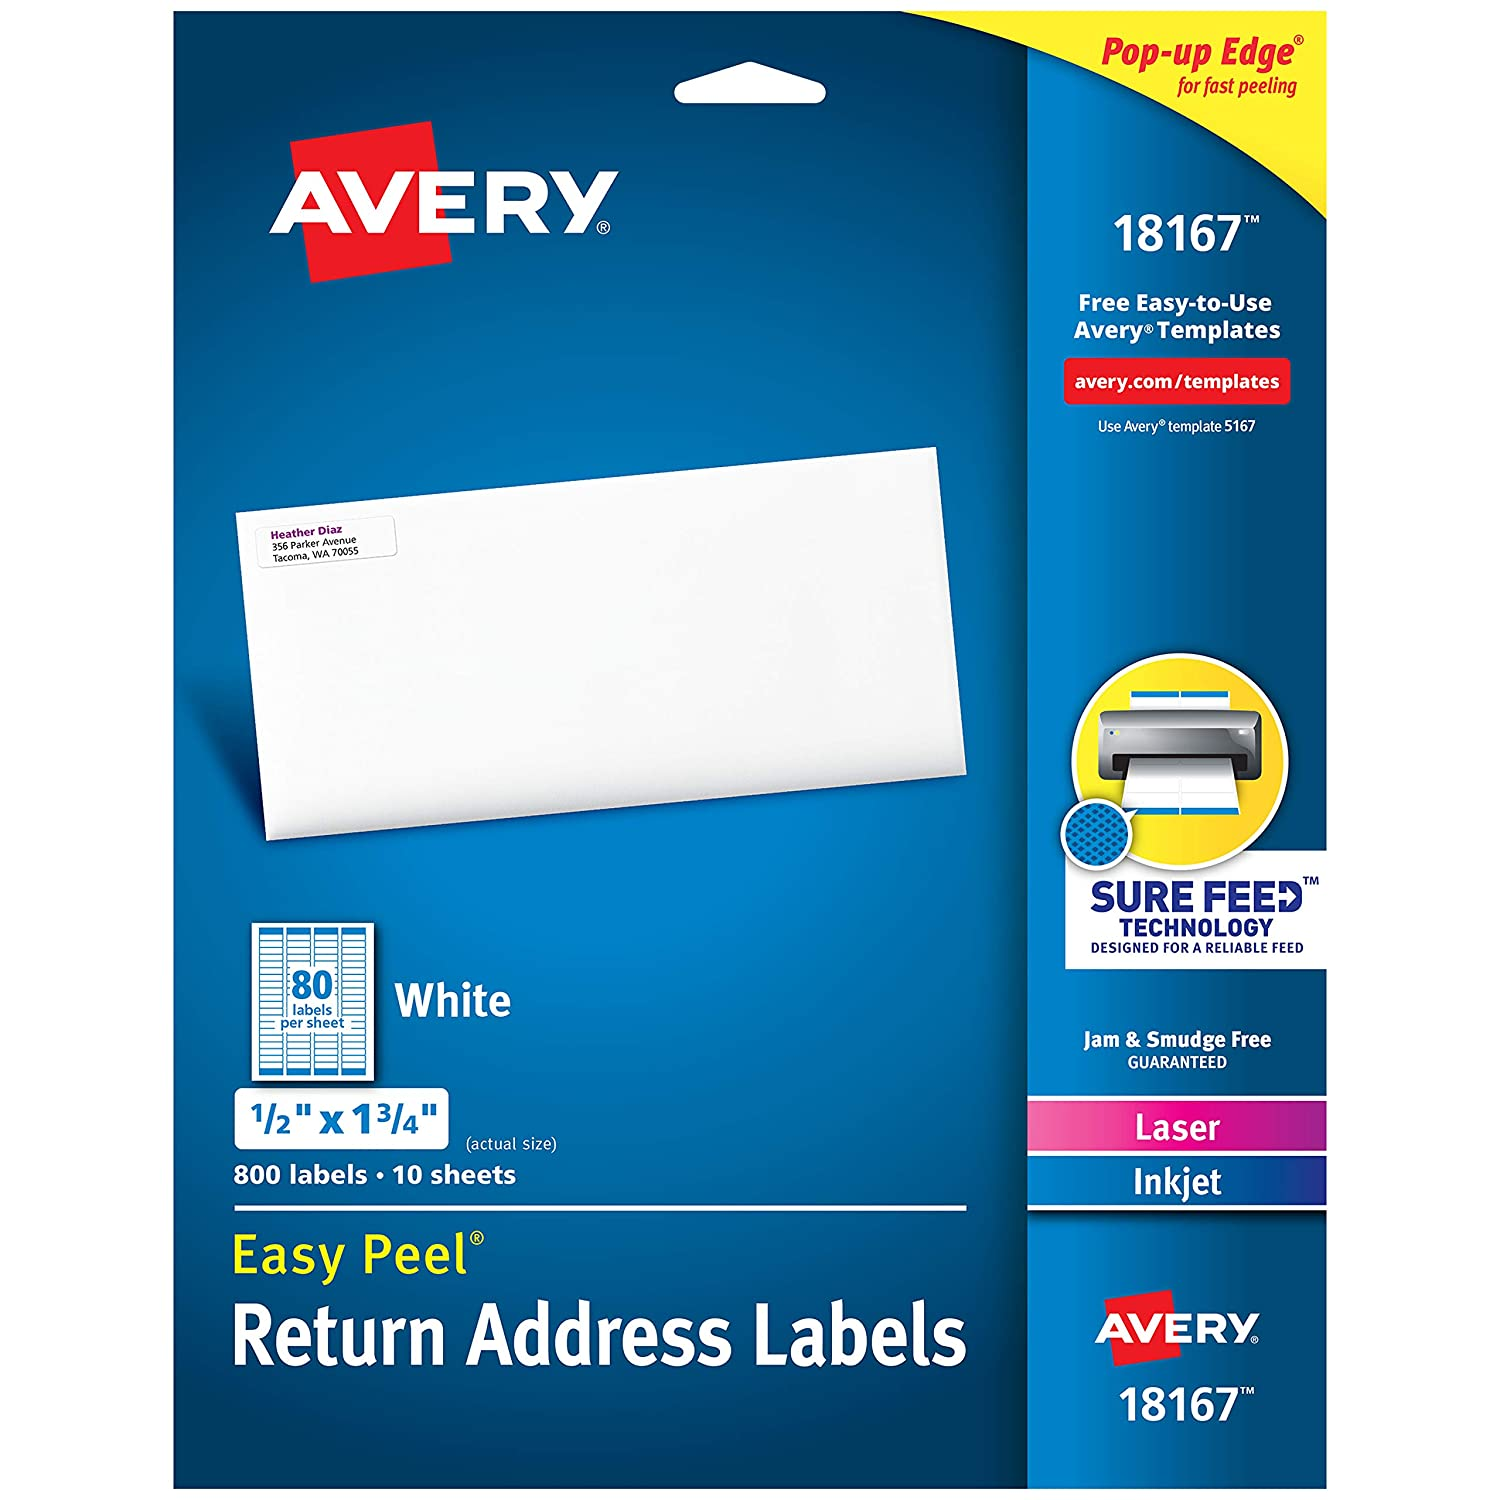 """B00004Z5C5 Avery Address Labels with Sure Feed for Inkjet Printers, 0.5"""" x 1.75"""", 800 Labels, Permanent Adhesive (18167), White 81FdKE5l8YL"""